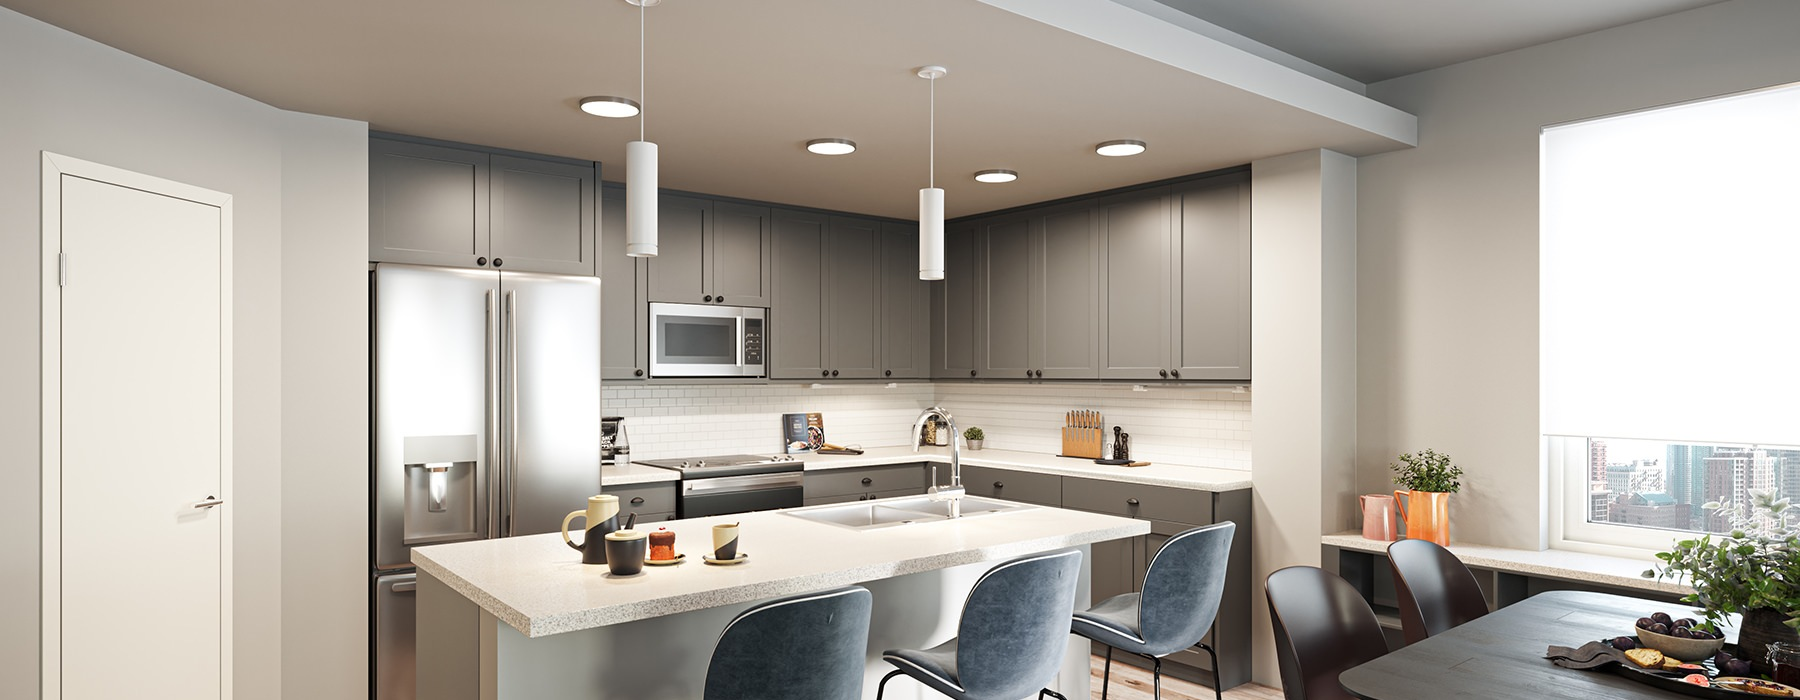 open kitchen with ample lighting